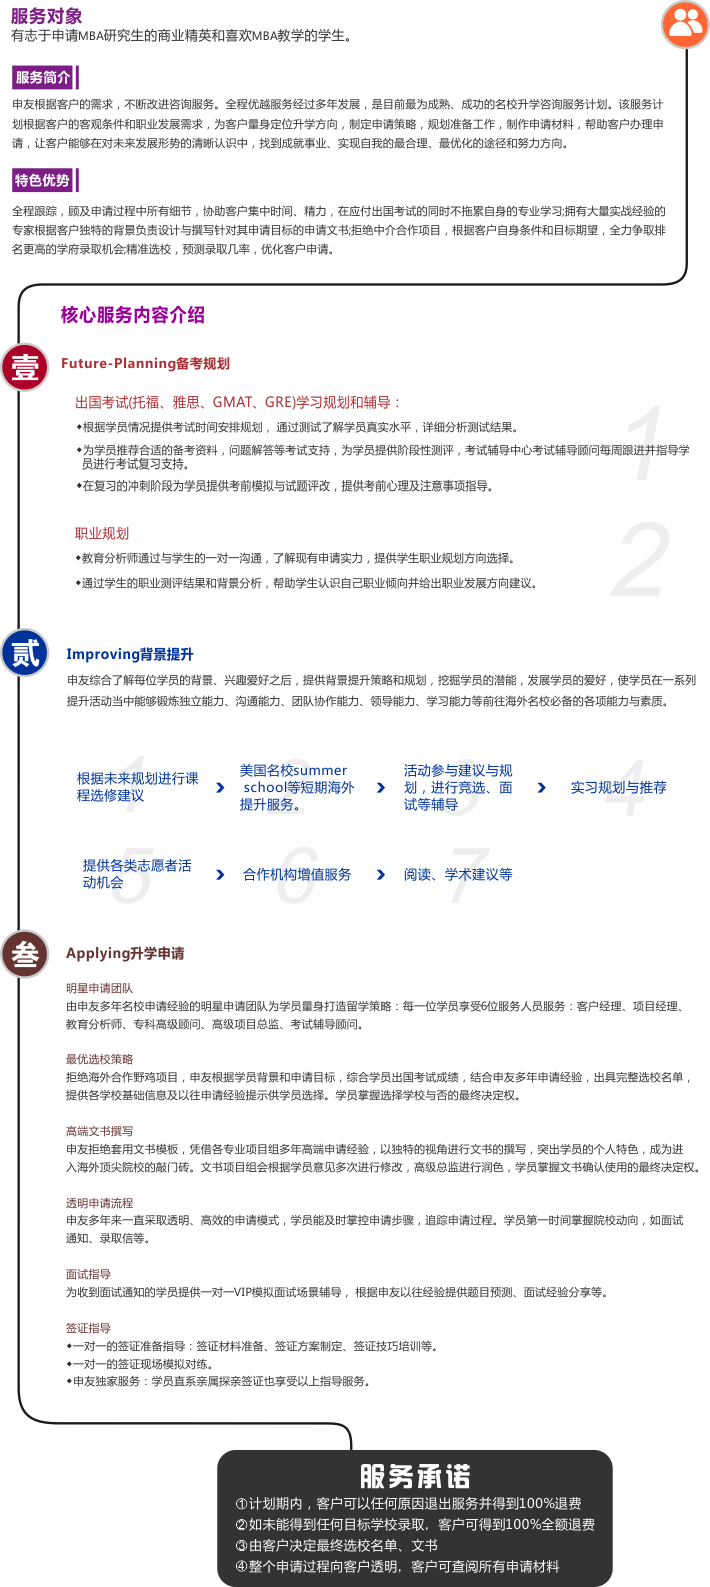 MBA申请计划.png